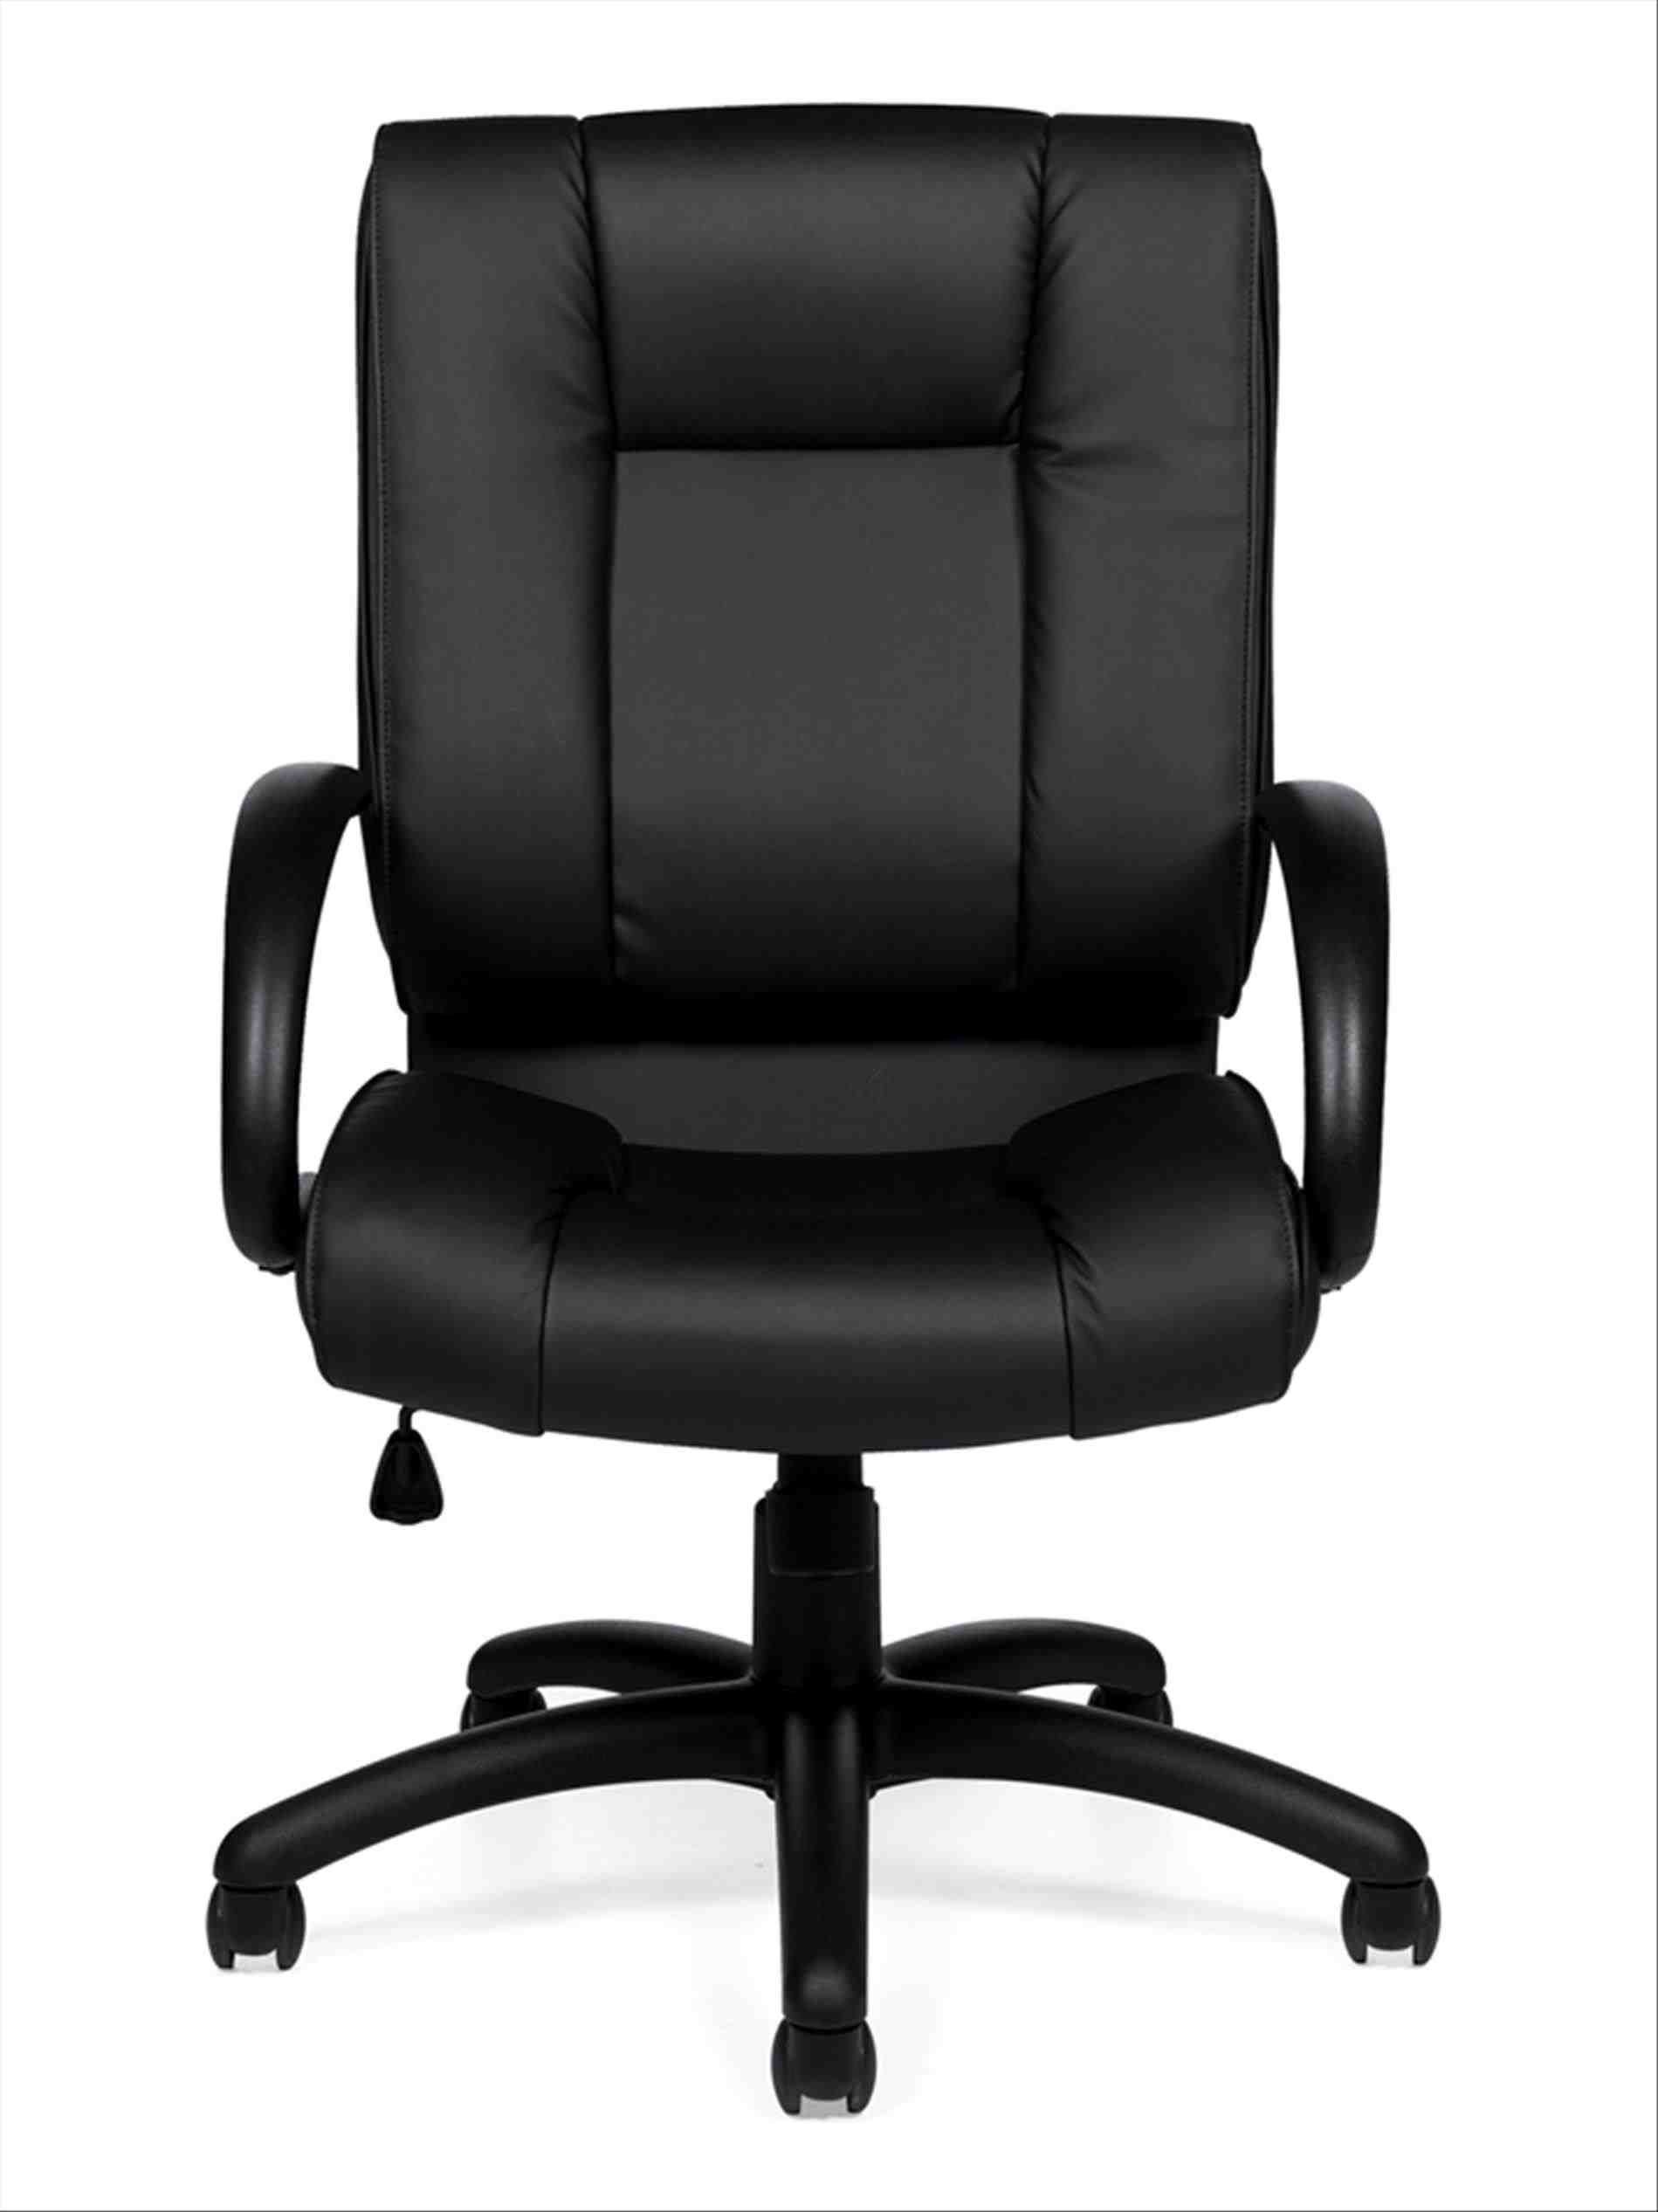 Office Chair Front Png Http Www Numsekongen Com Office Chair Front Png Black Leather Office Chair Executive Office Chairs Leather Office Chair